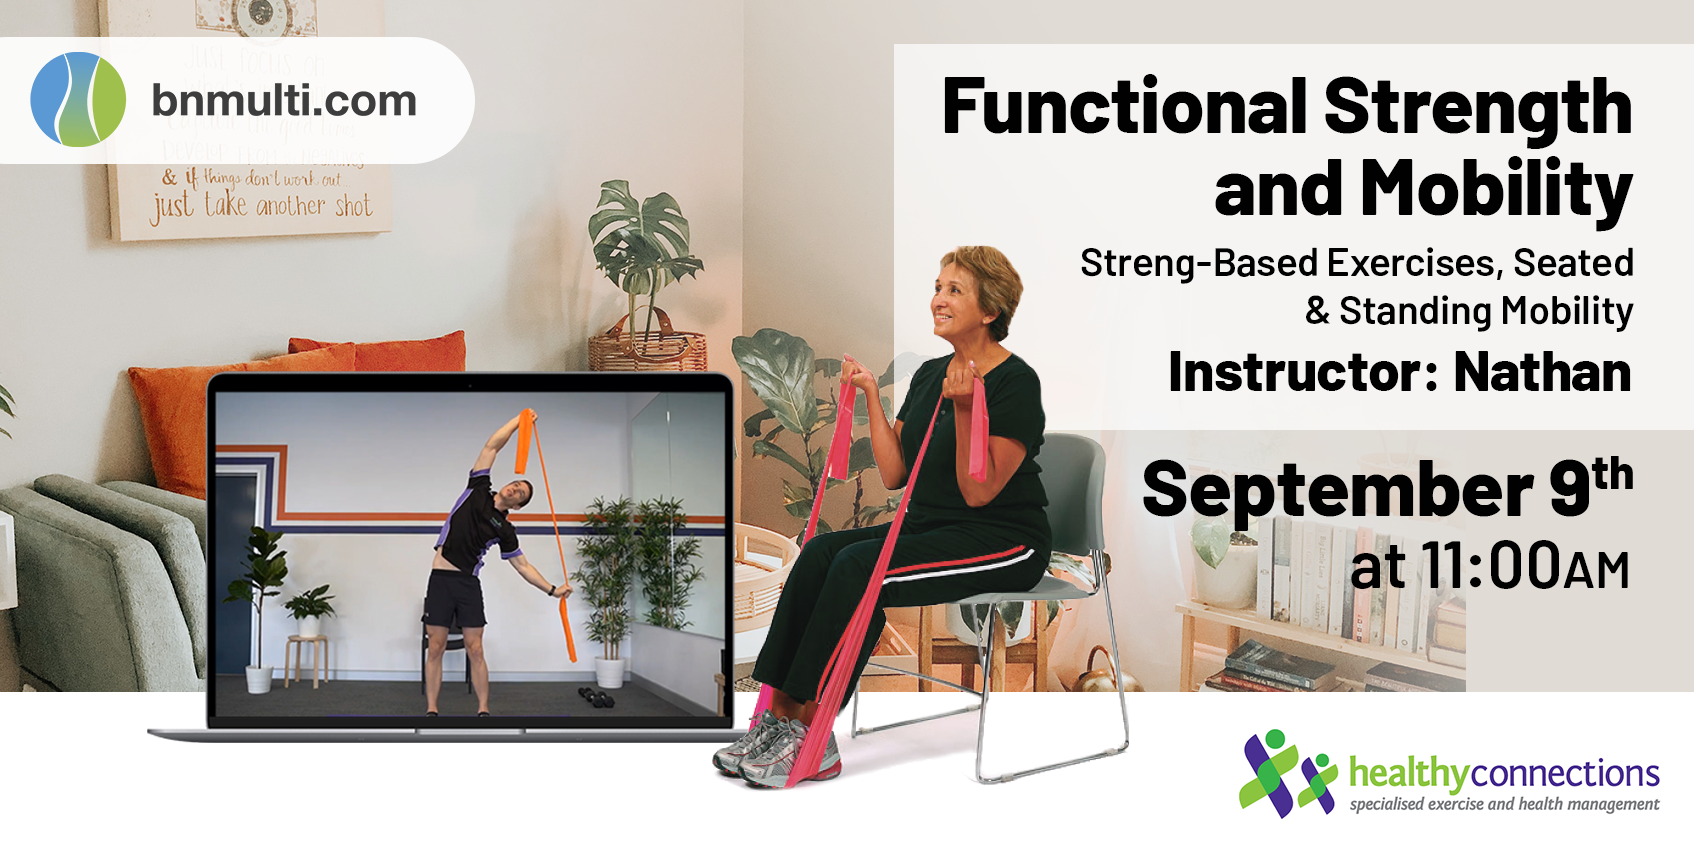 functional strength and mobility exercise